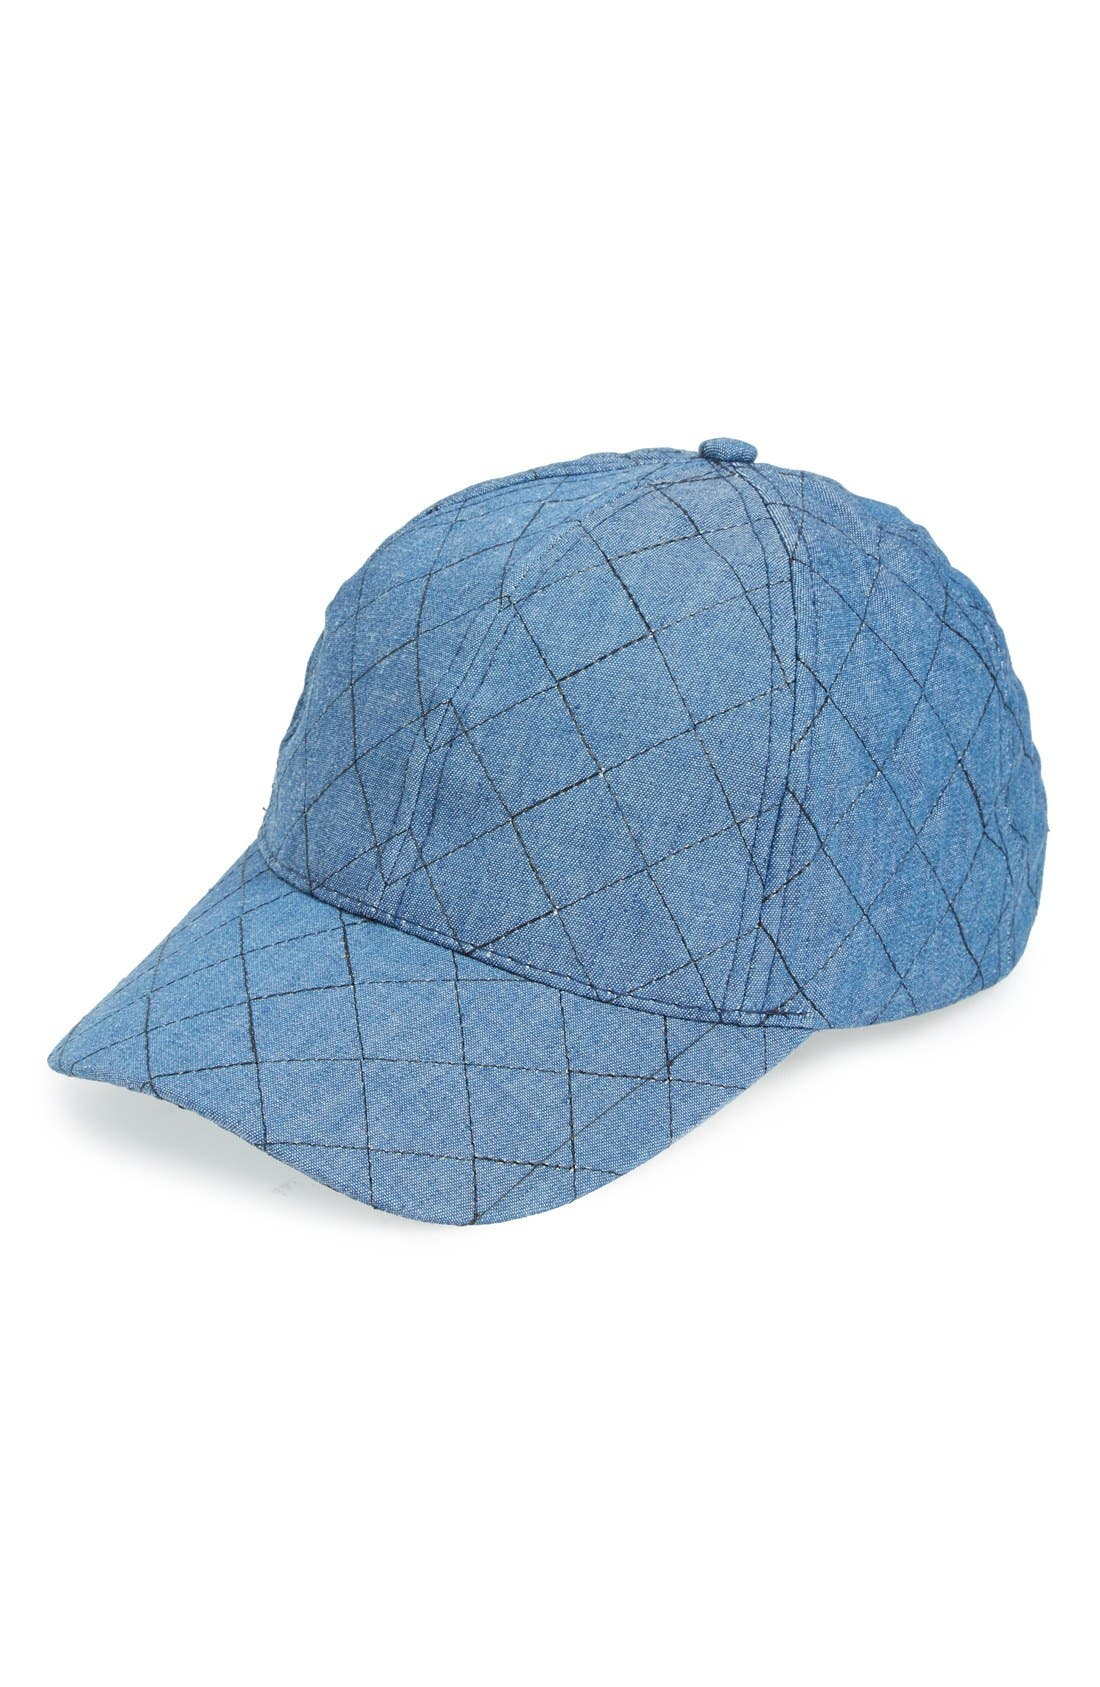 Alternate Image 1 Selected - Amici Accessories Quilted Chambray Ball Cap